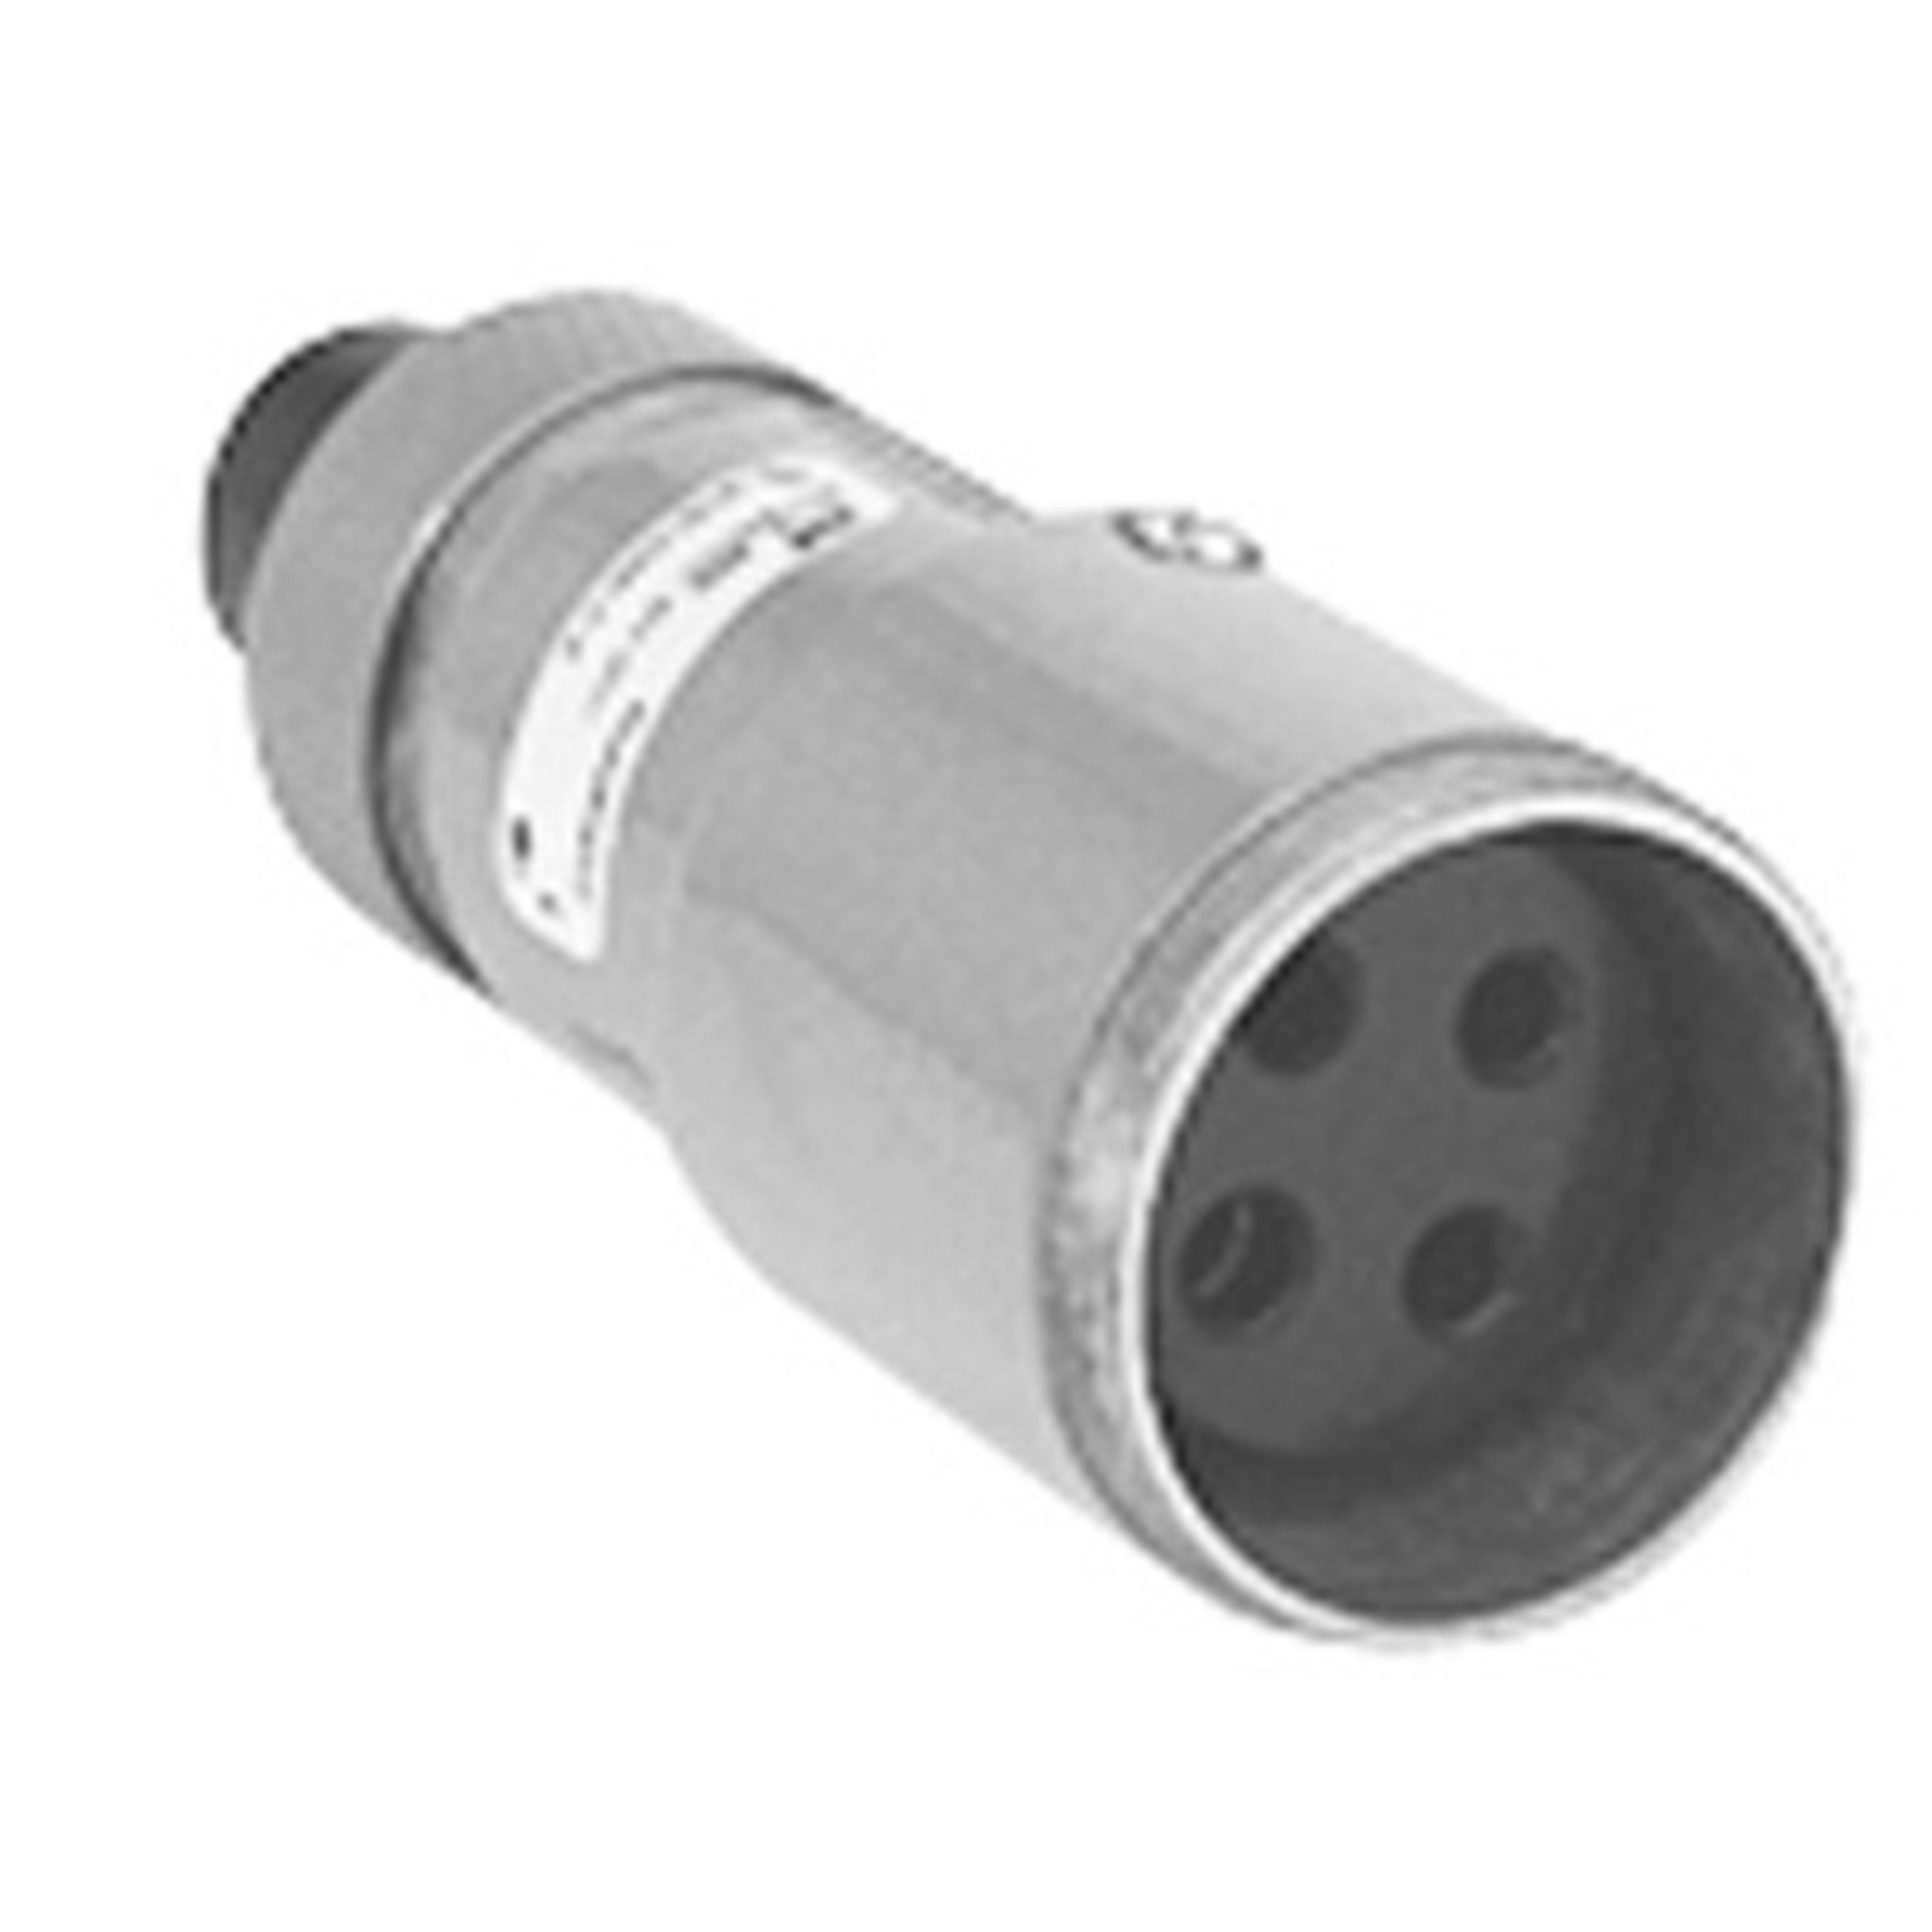 RUSSELLSTOLL T&B 3809 CONNECTOR